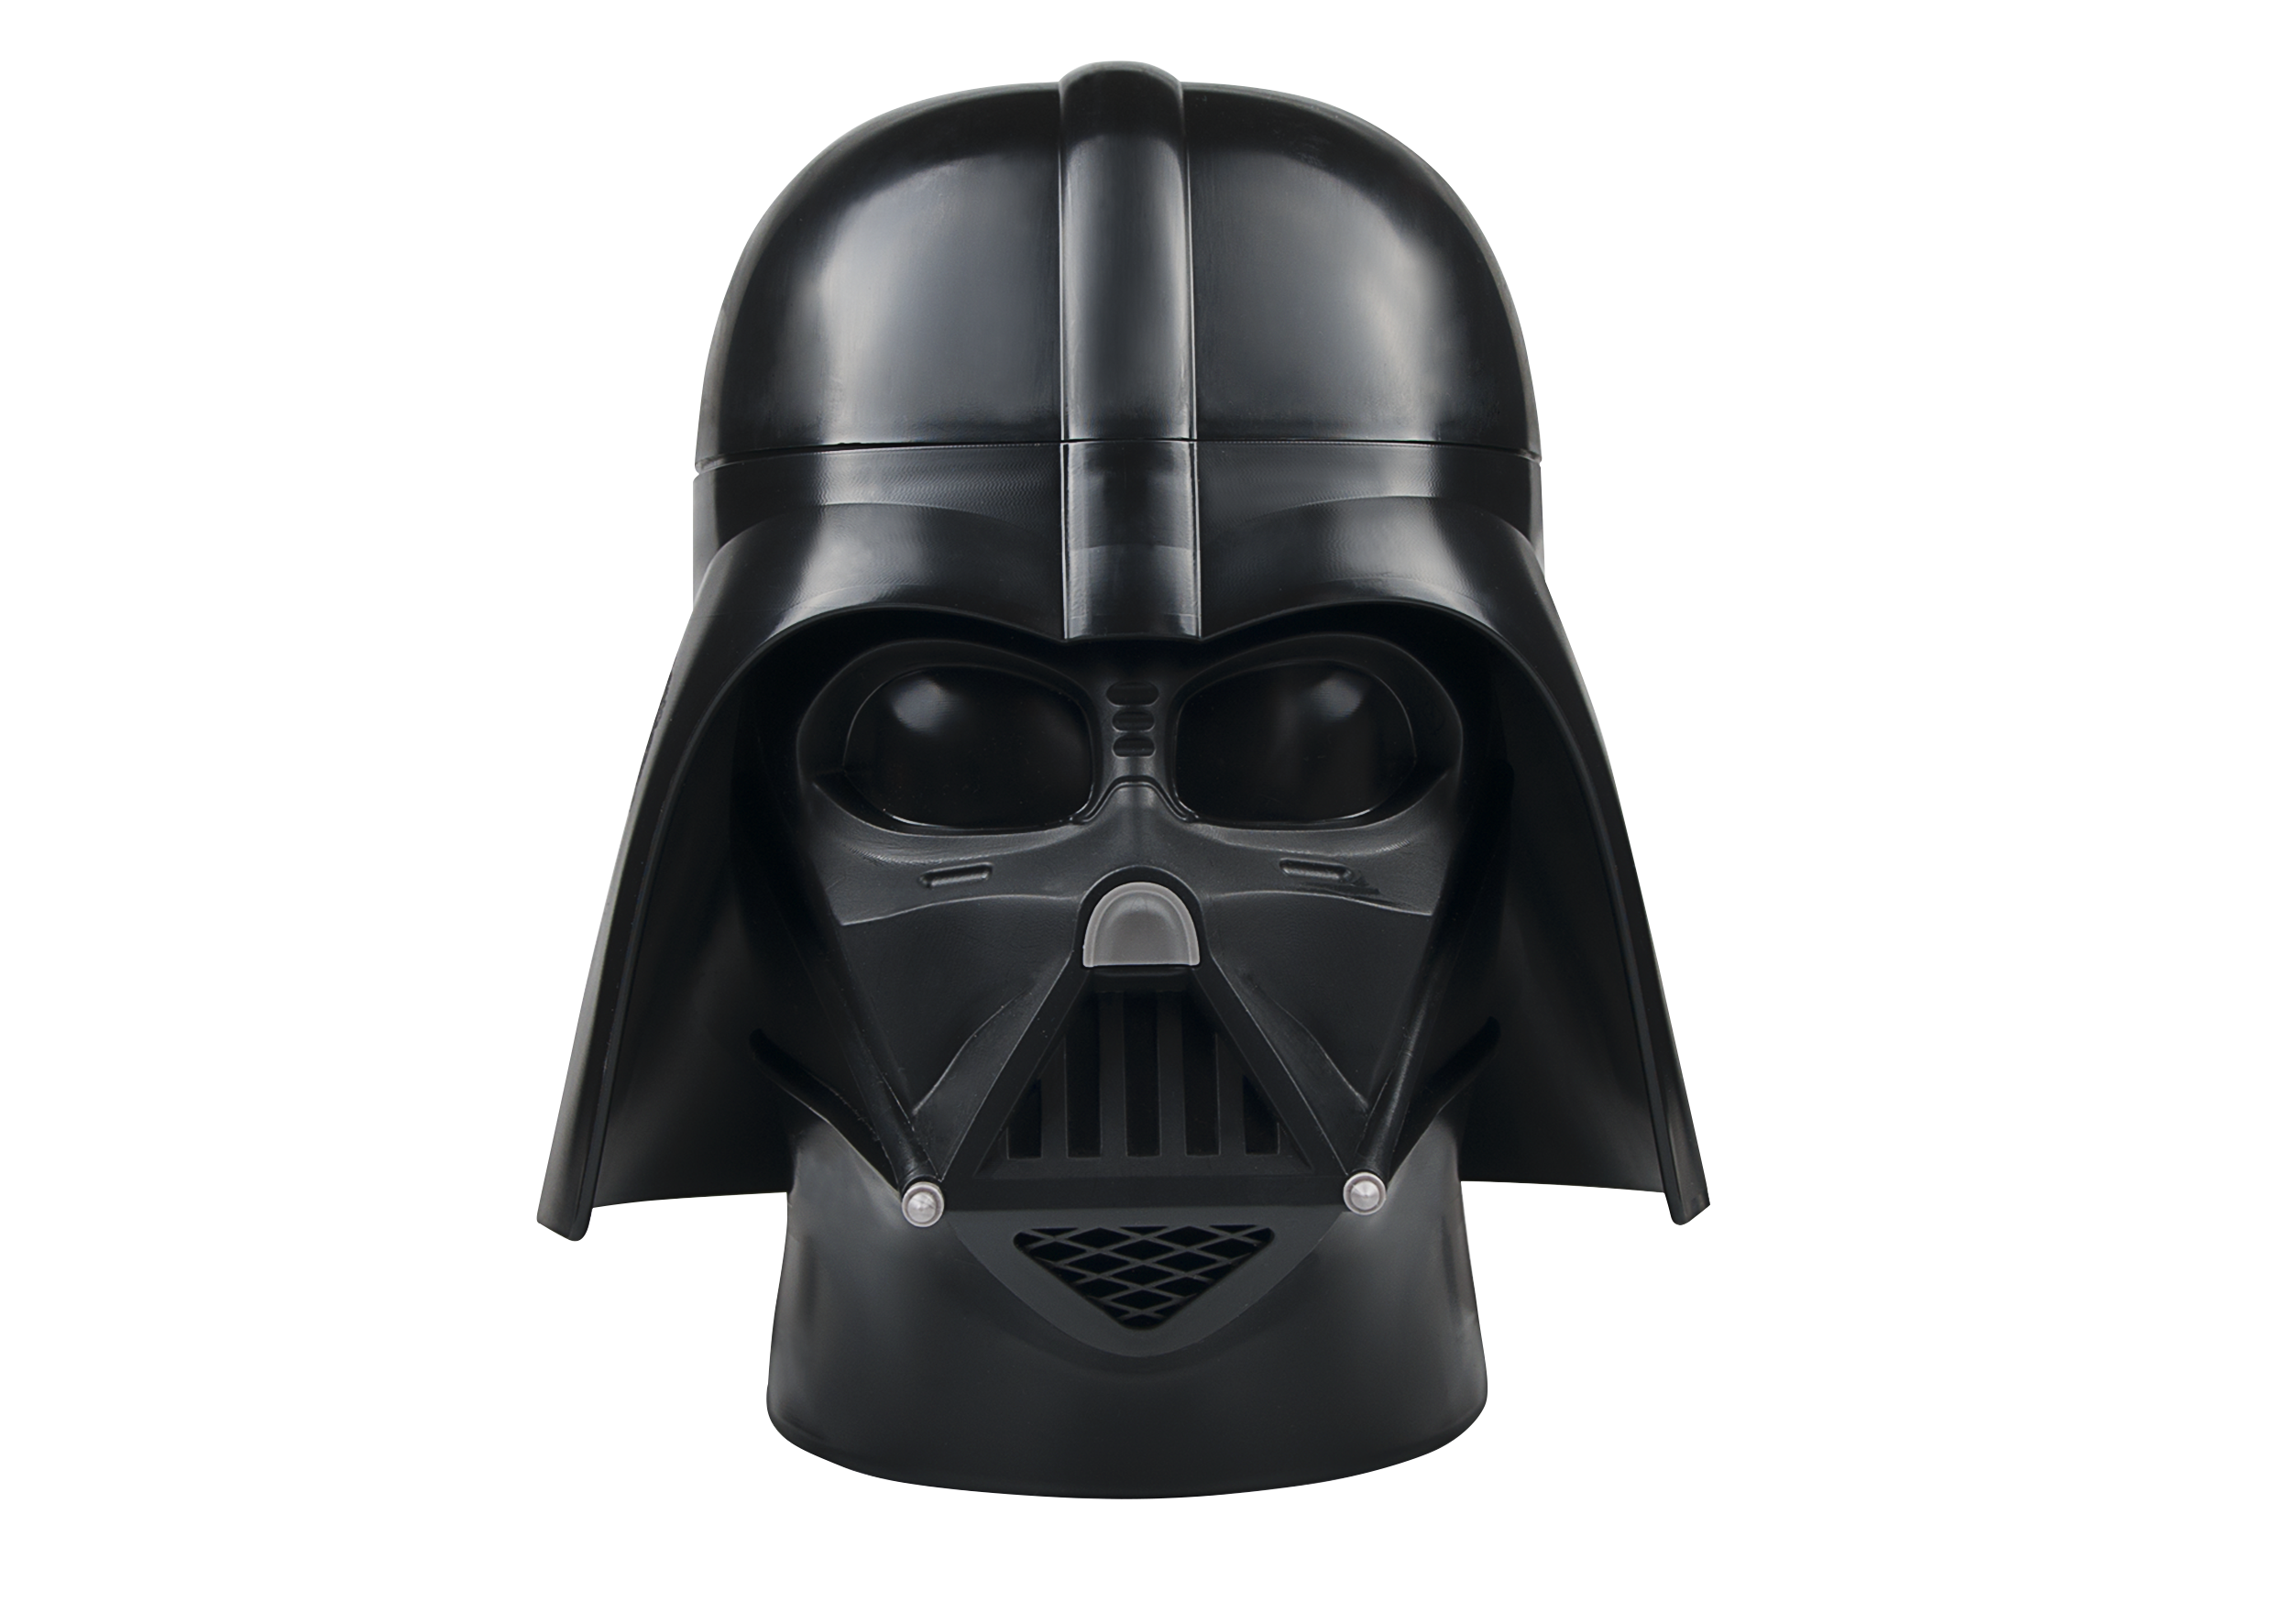 Darth vader head png. Icon web icons transparent